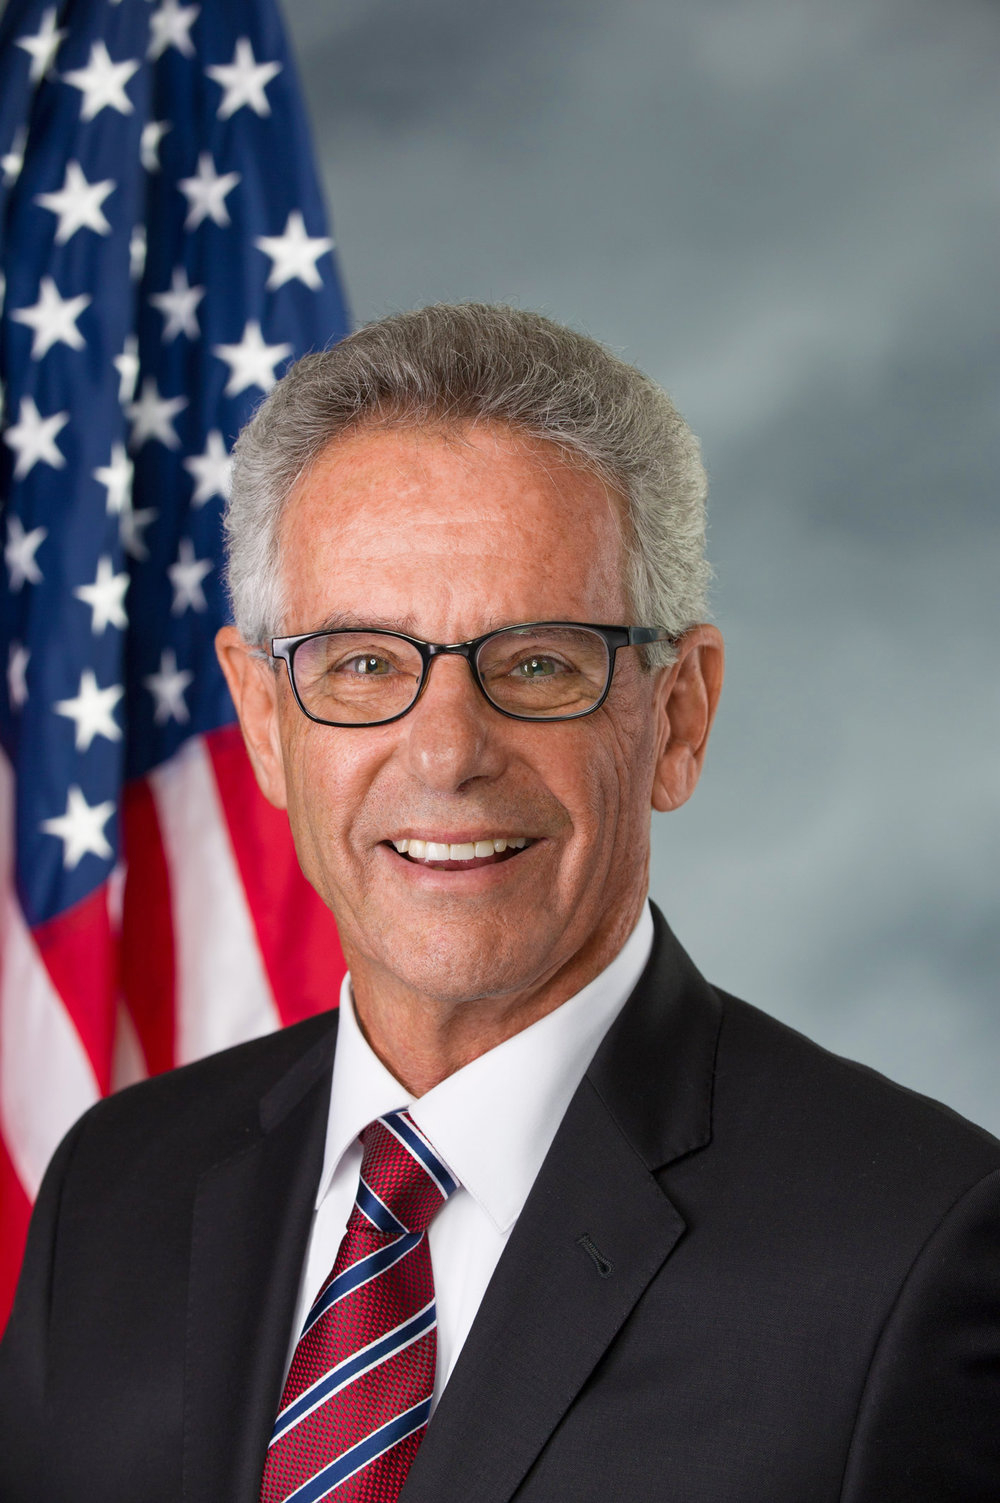 Representative Alan Lowenthal is the Democratic Congressman representing California's 47th Congressional District. Before being elected to the House in 2012, Representative Lowenthal worked as a psychologist, a professor at California State University, a member of the Long Beach, CA city council, and a member of the California State Assembly and the California State Senate. He graduated with a B.A. from Hobart College in Geneva, New York, with an M.A. from Ohio State University in Columbus, Ohio, and with a Ph.D., also from Ohio State University.